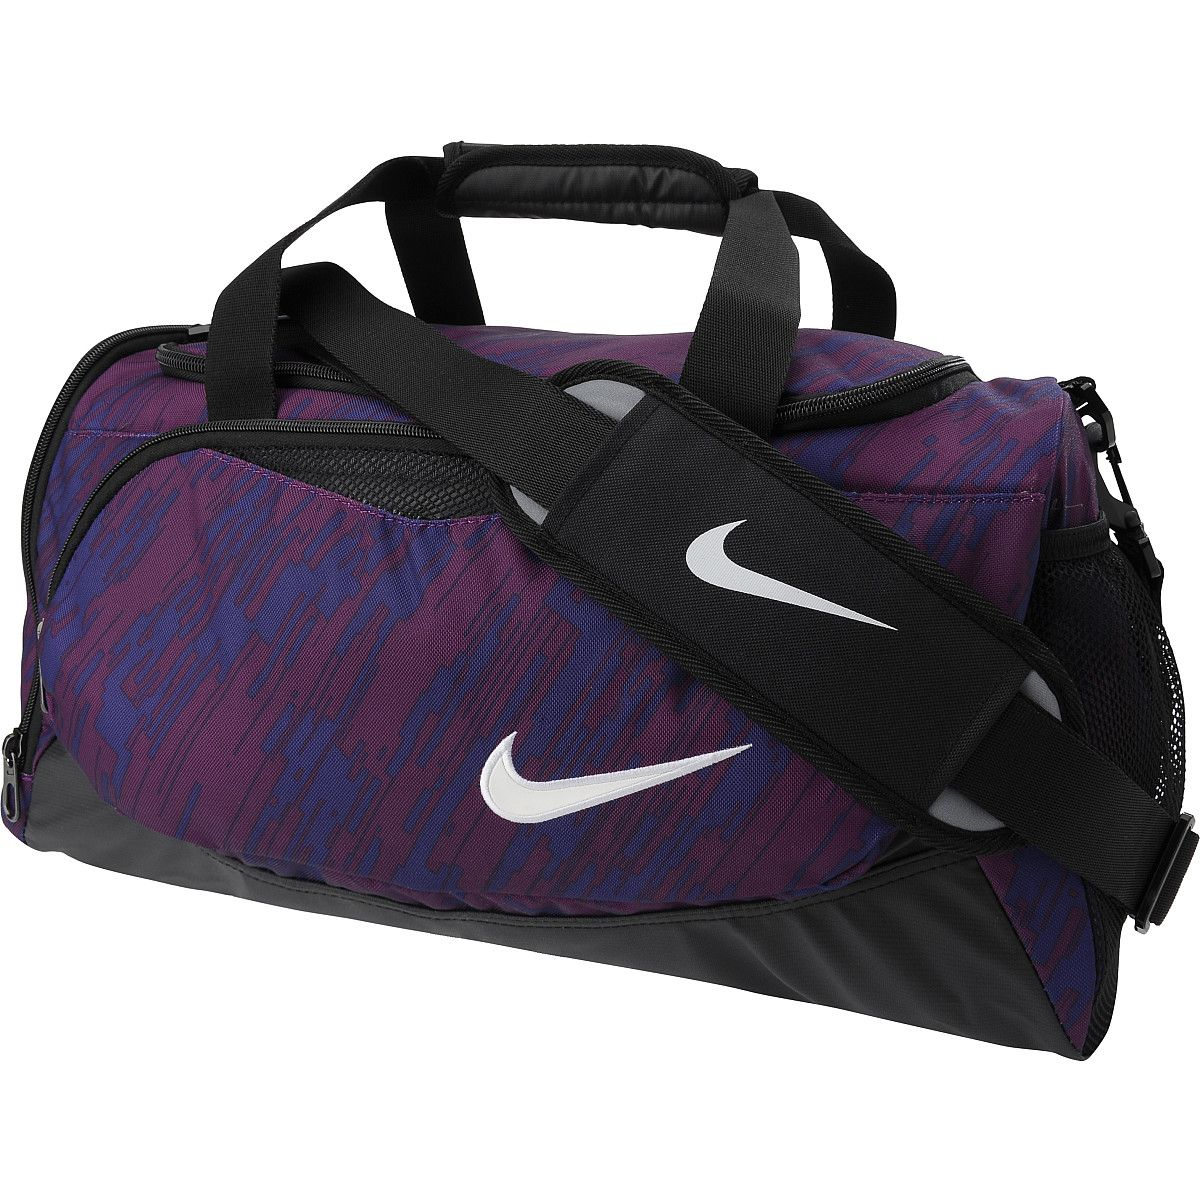 NIKE YA Team Training Duffle Bag - Small - SportsAuthority.com ... 7422ff85c7630